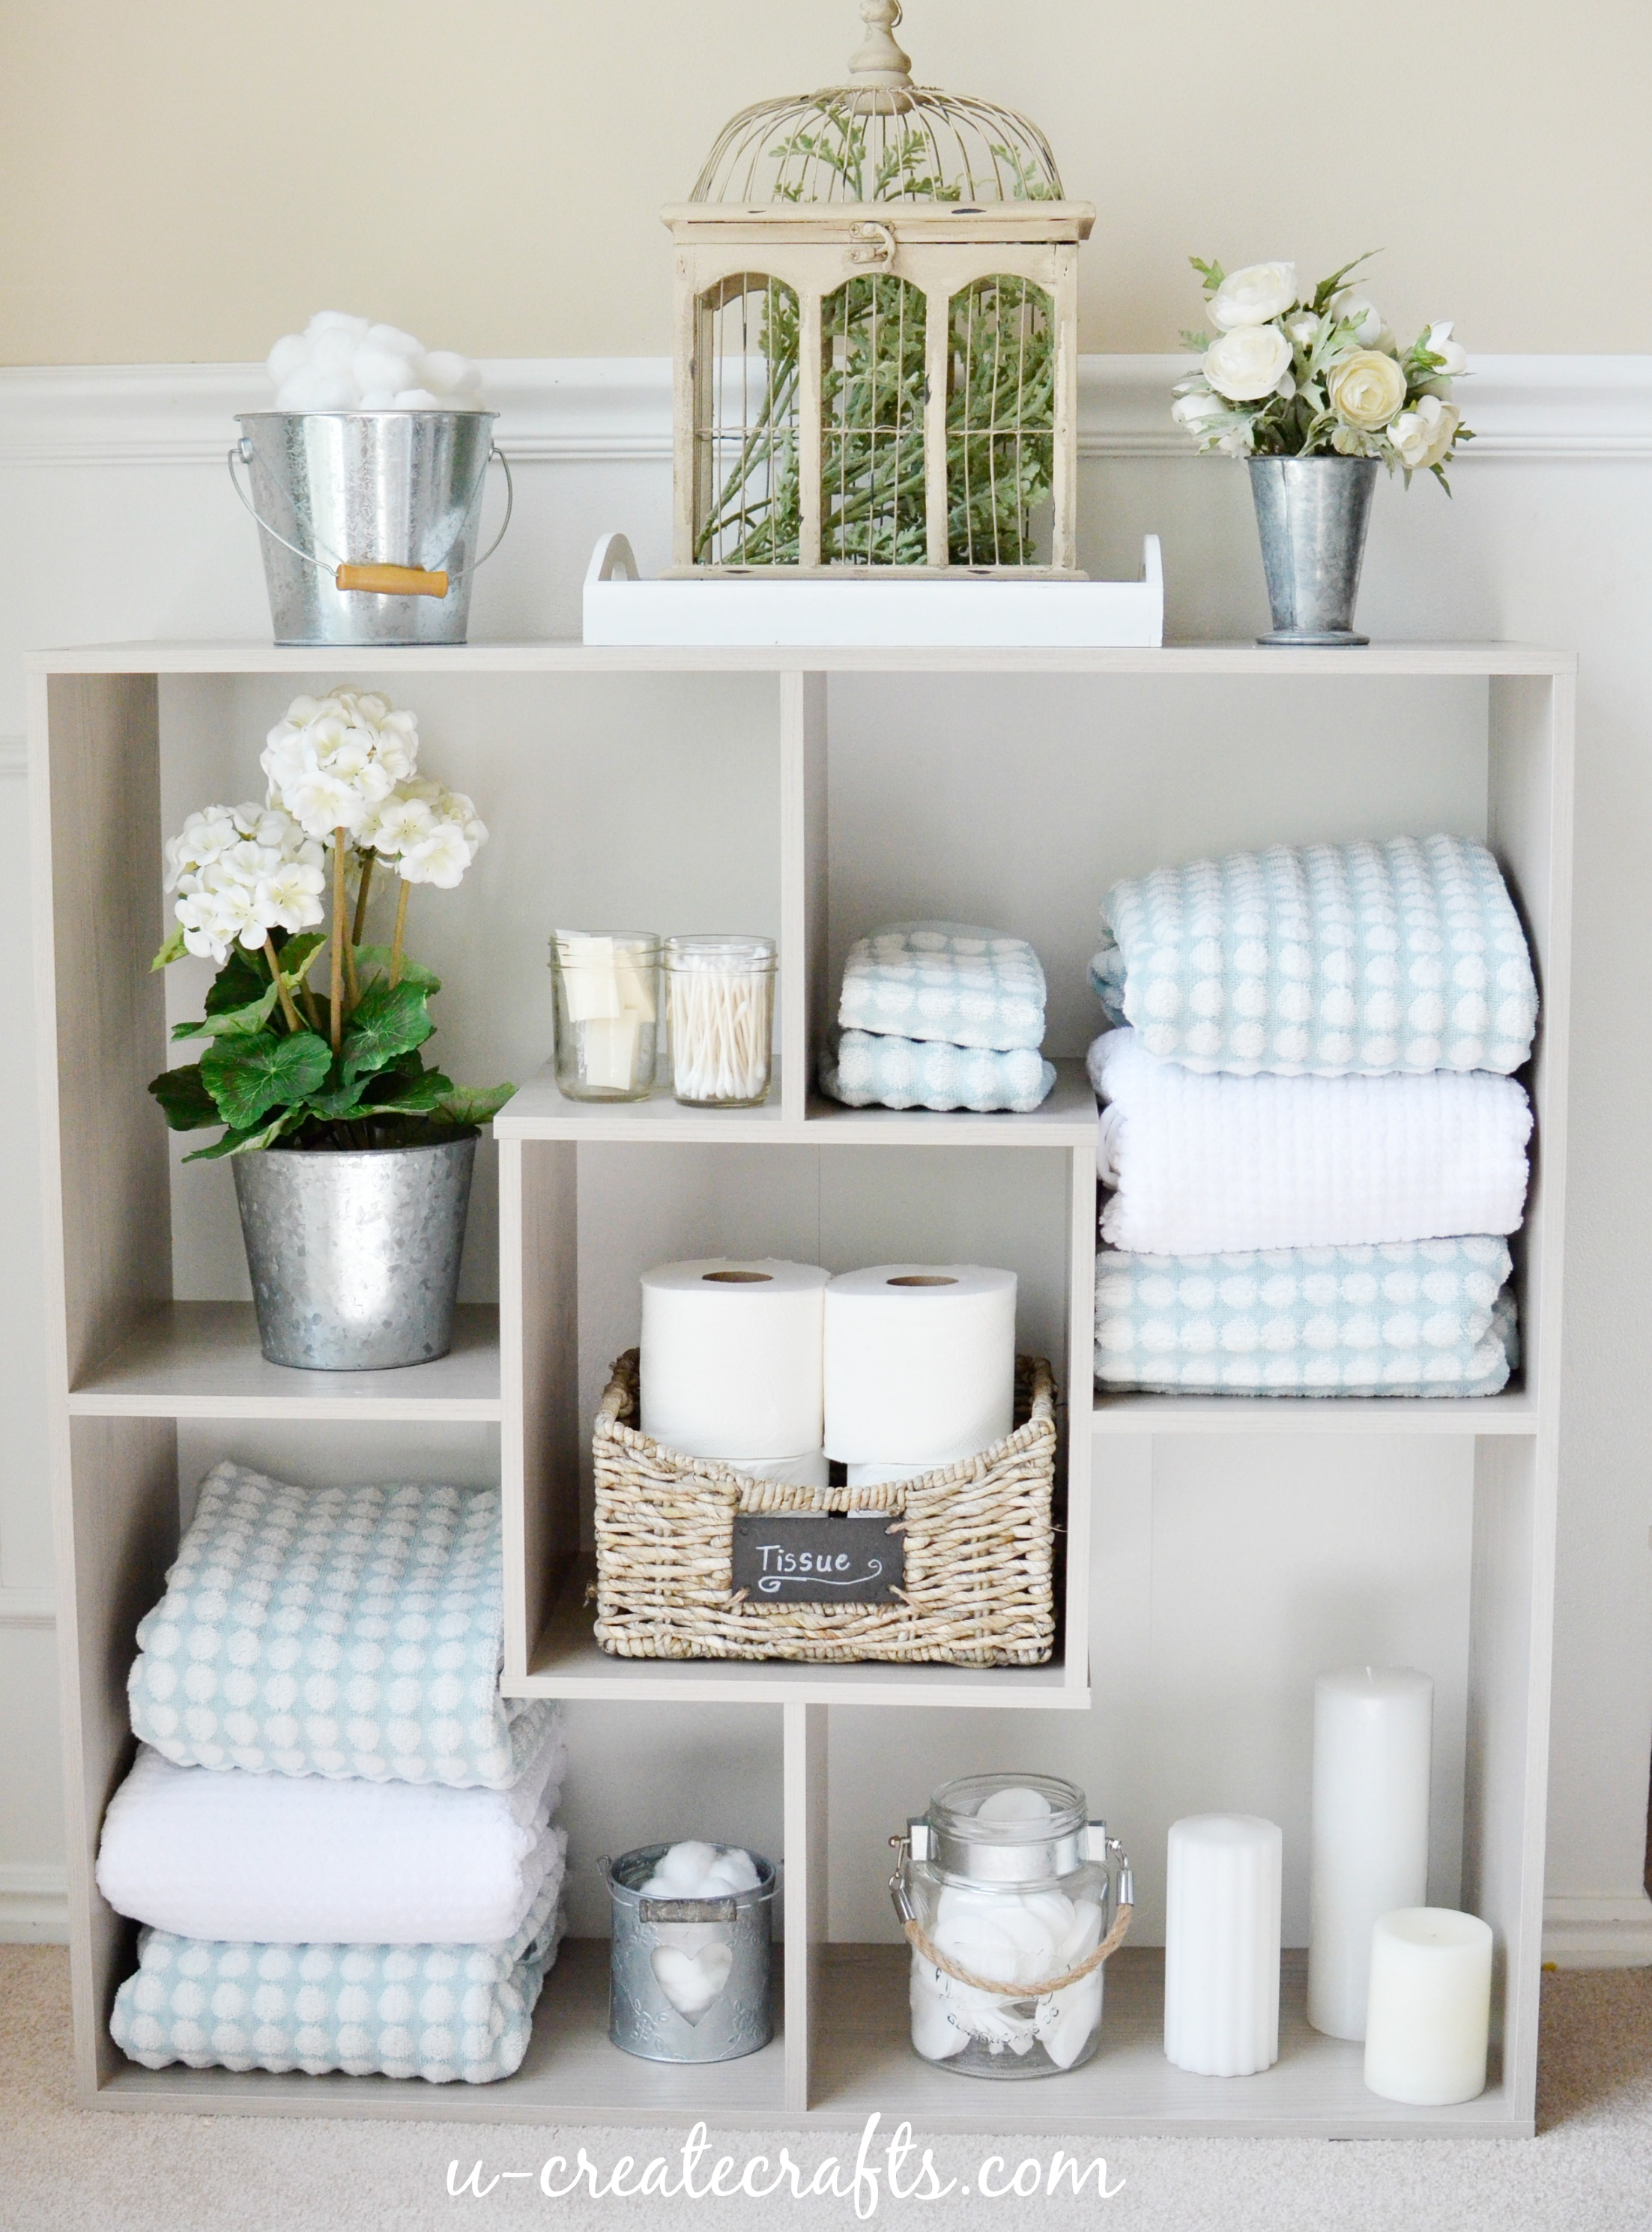 sauder bathroom shelves u create. Black Bedroom Furniture Sets. Home Design Ideas